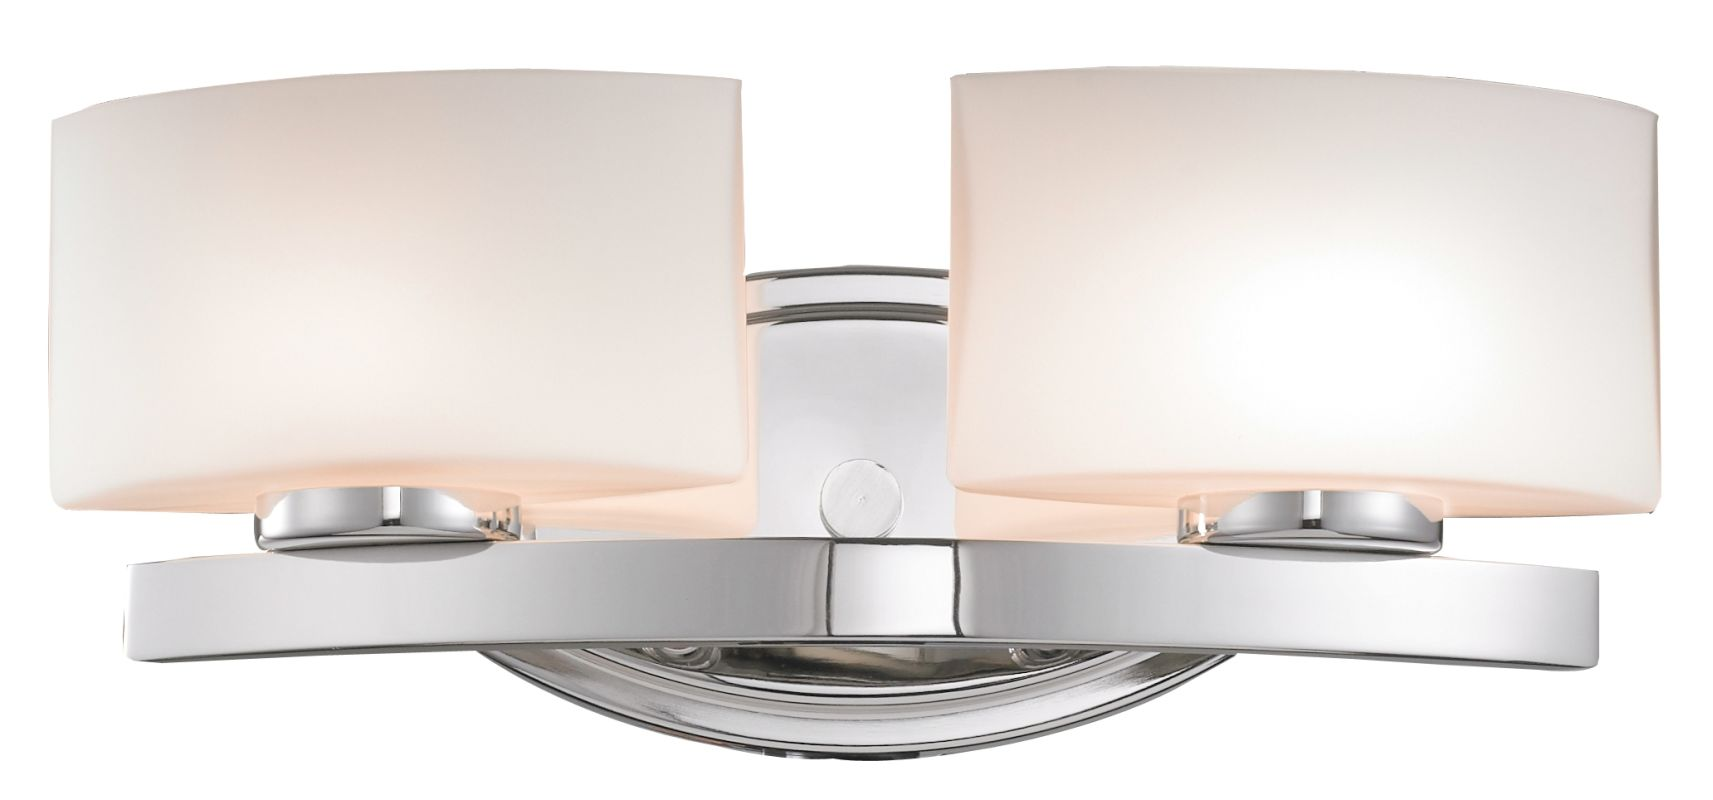 Z-Lite 3014-2V Galati 2 Light Bathroom Vanity Light with Matte Opal Sale $172.00 ITEM: bci2219359 ID#:3014-2V UPC: 685659022100 :